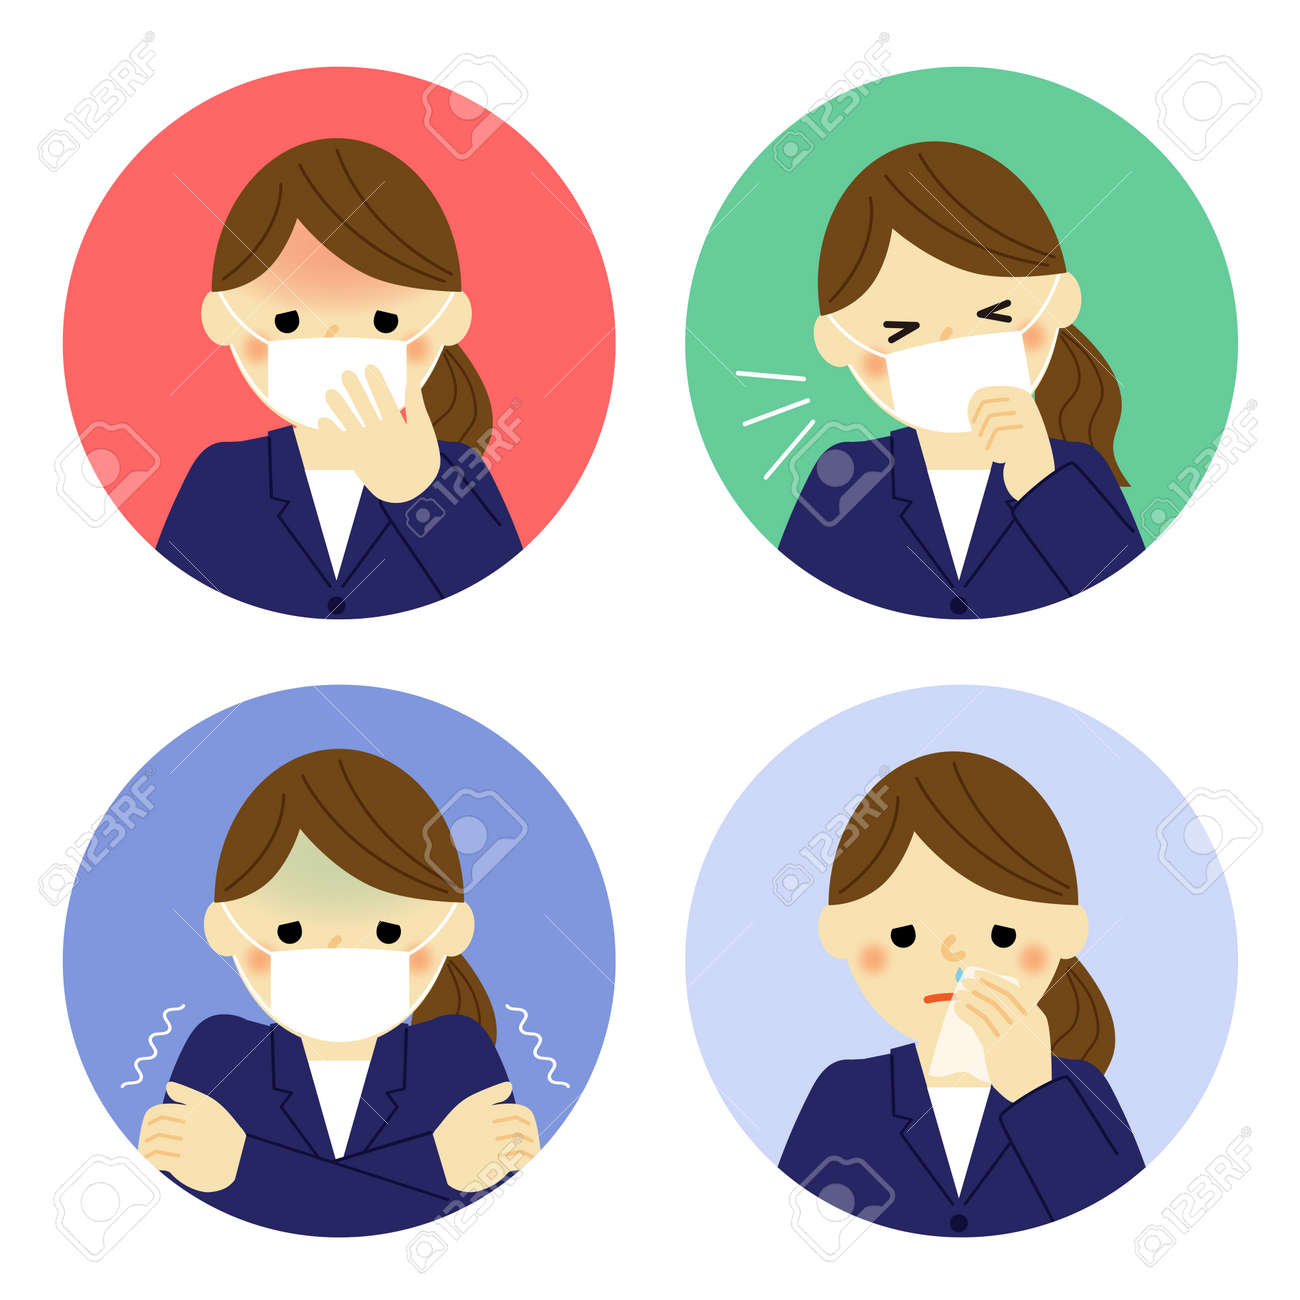 Cold symptoms of business woman - 50557773